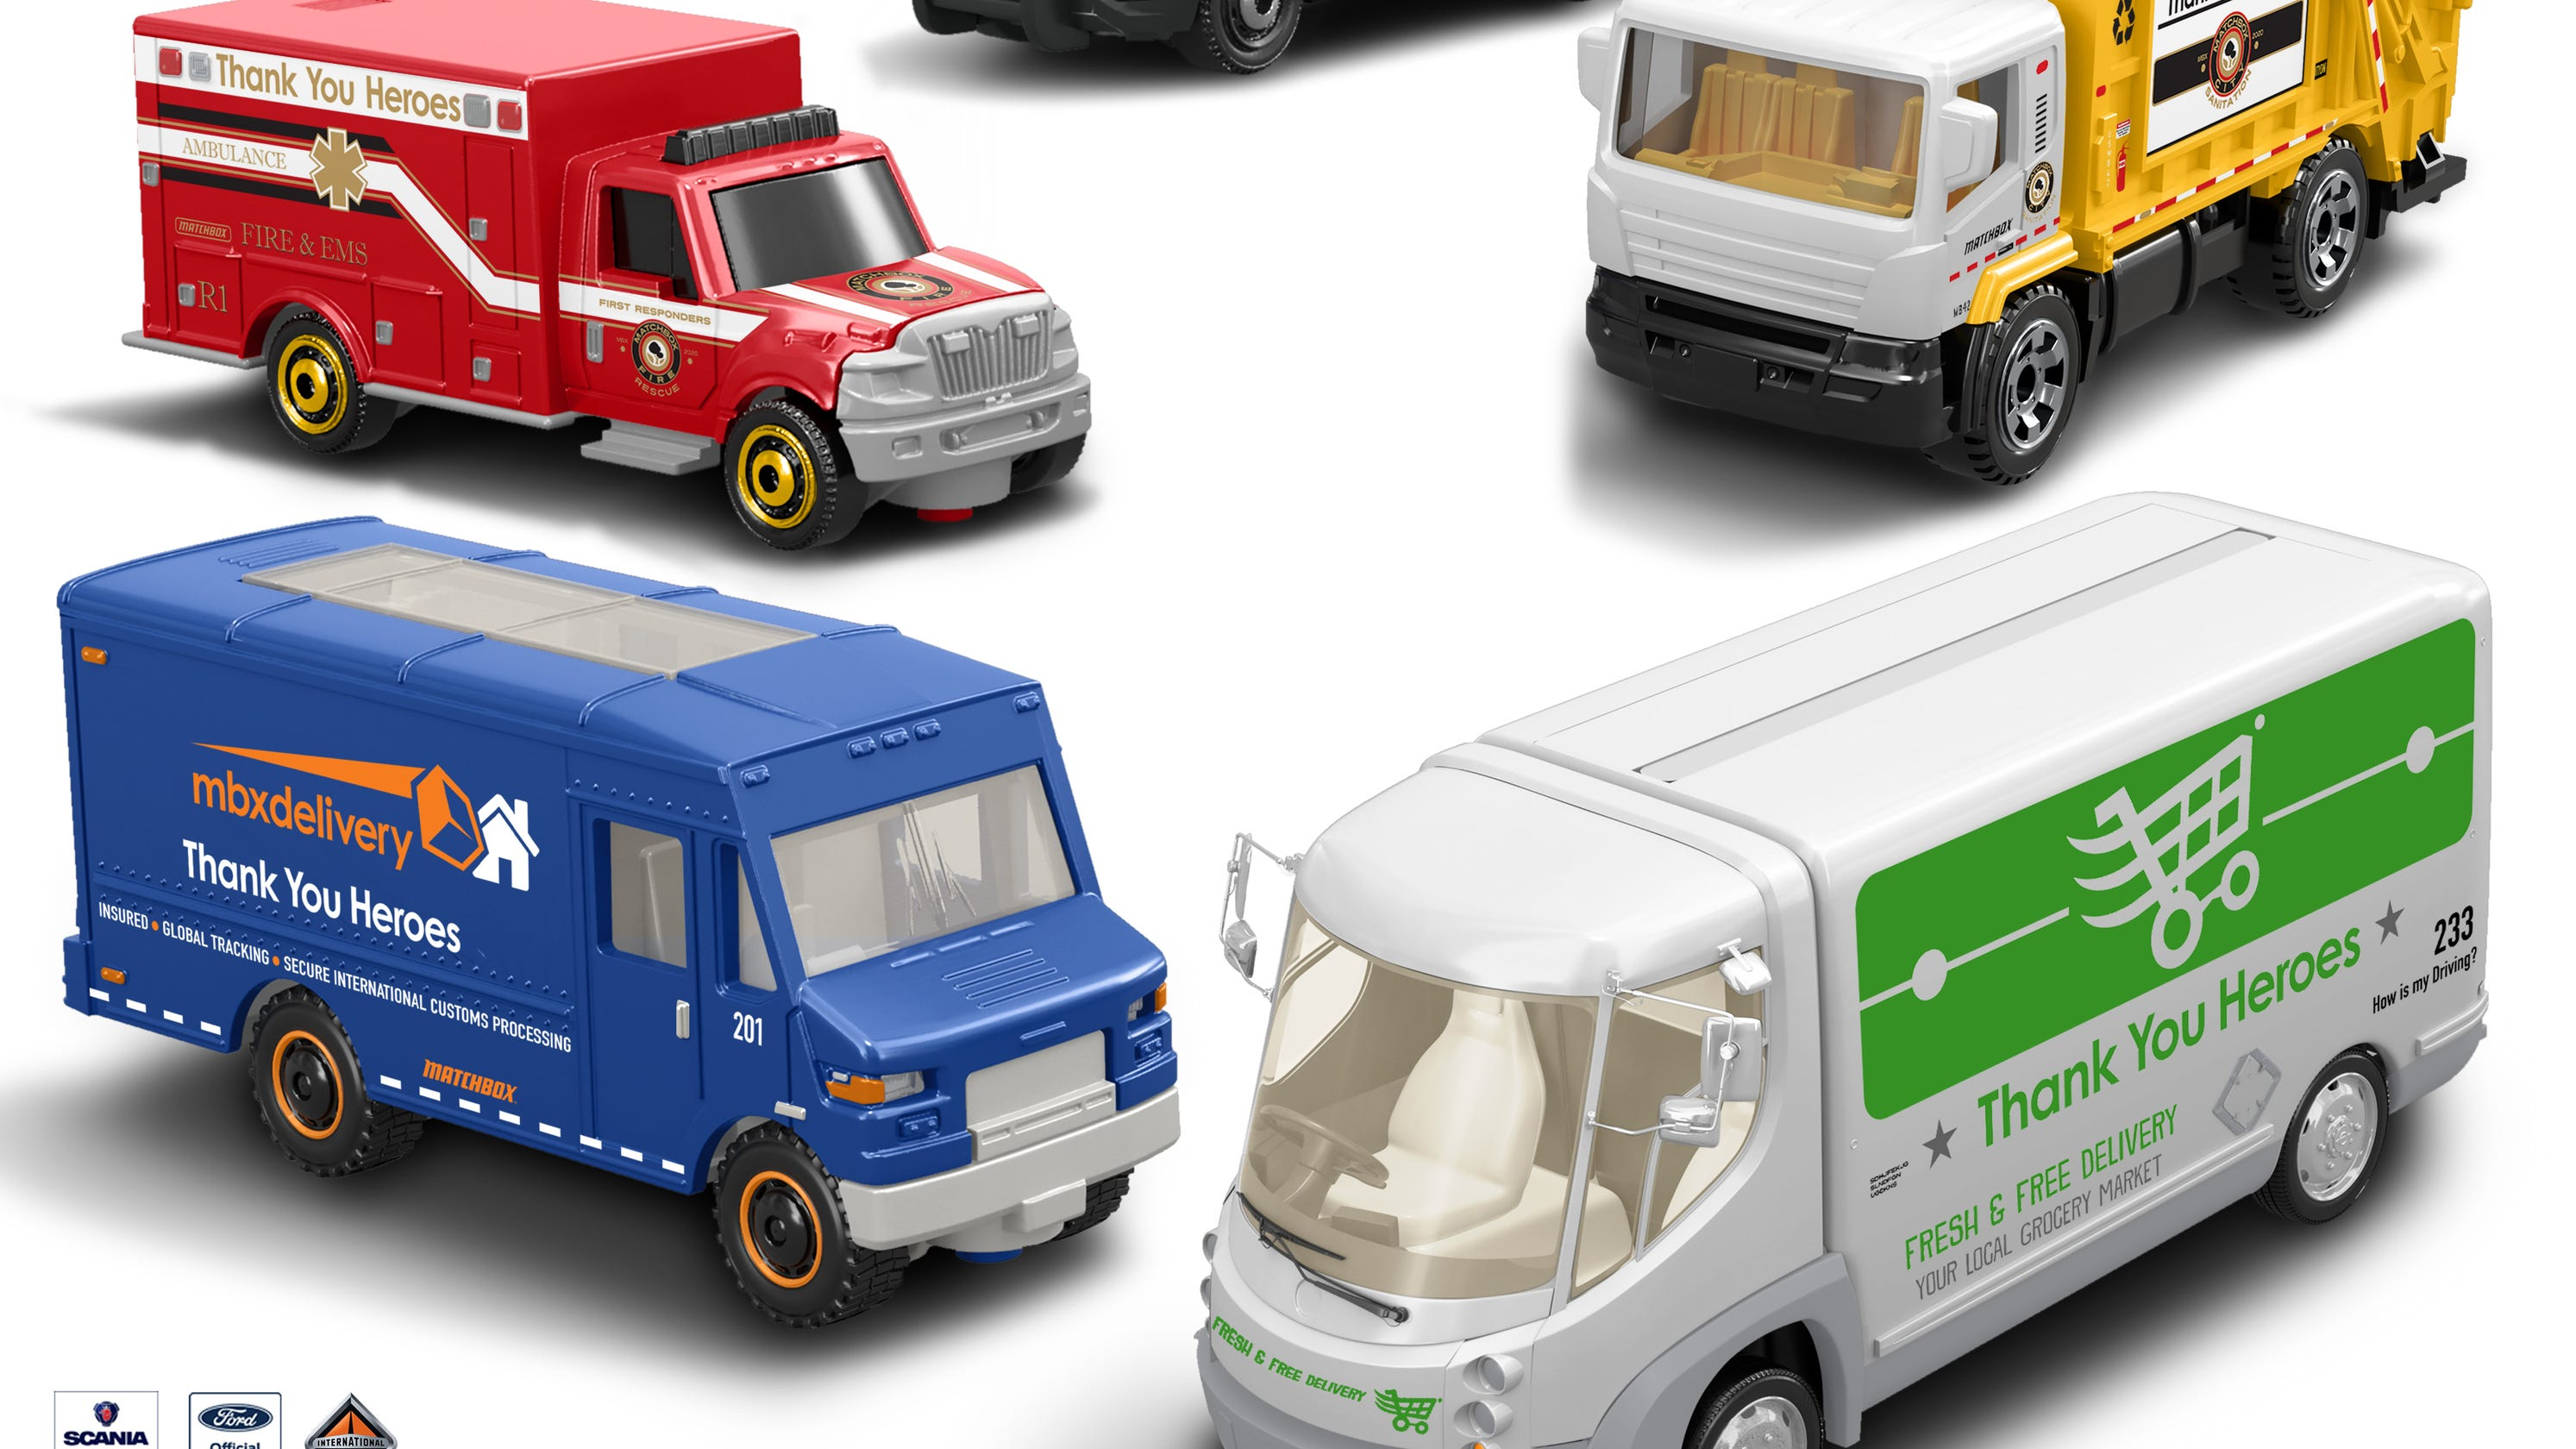 New additions from Mattel include Matchbox vehicles